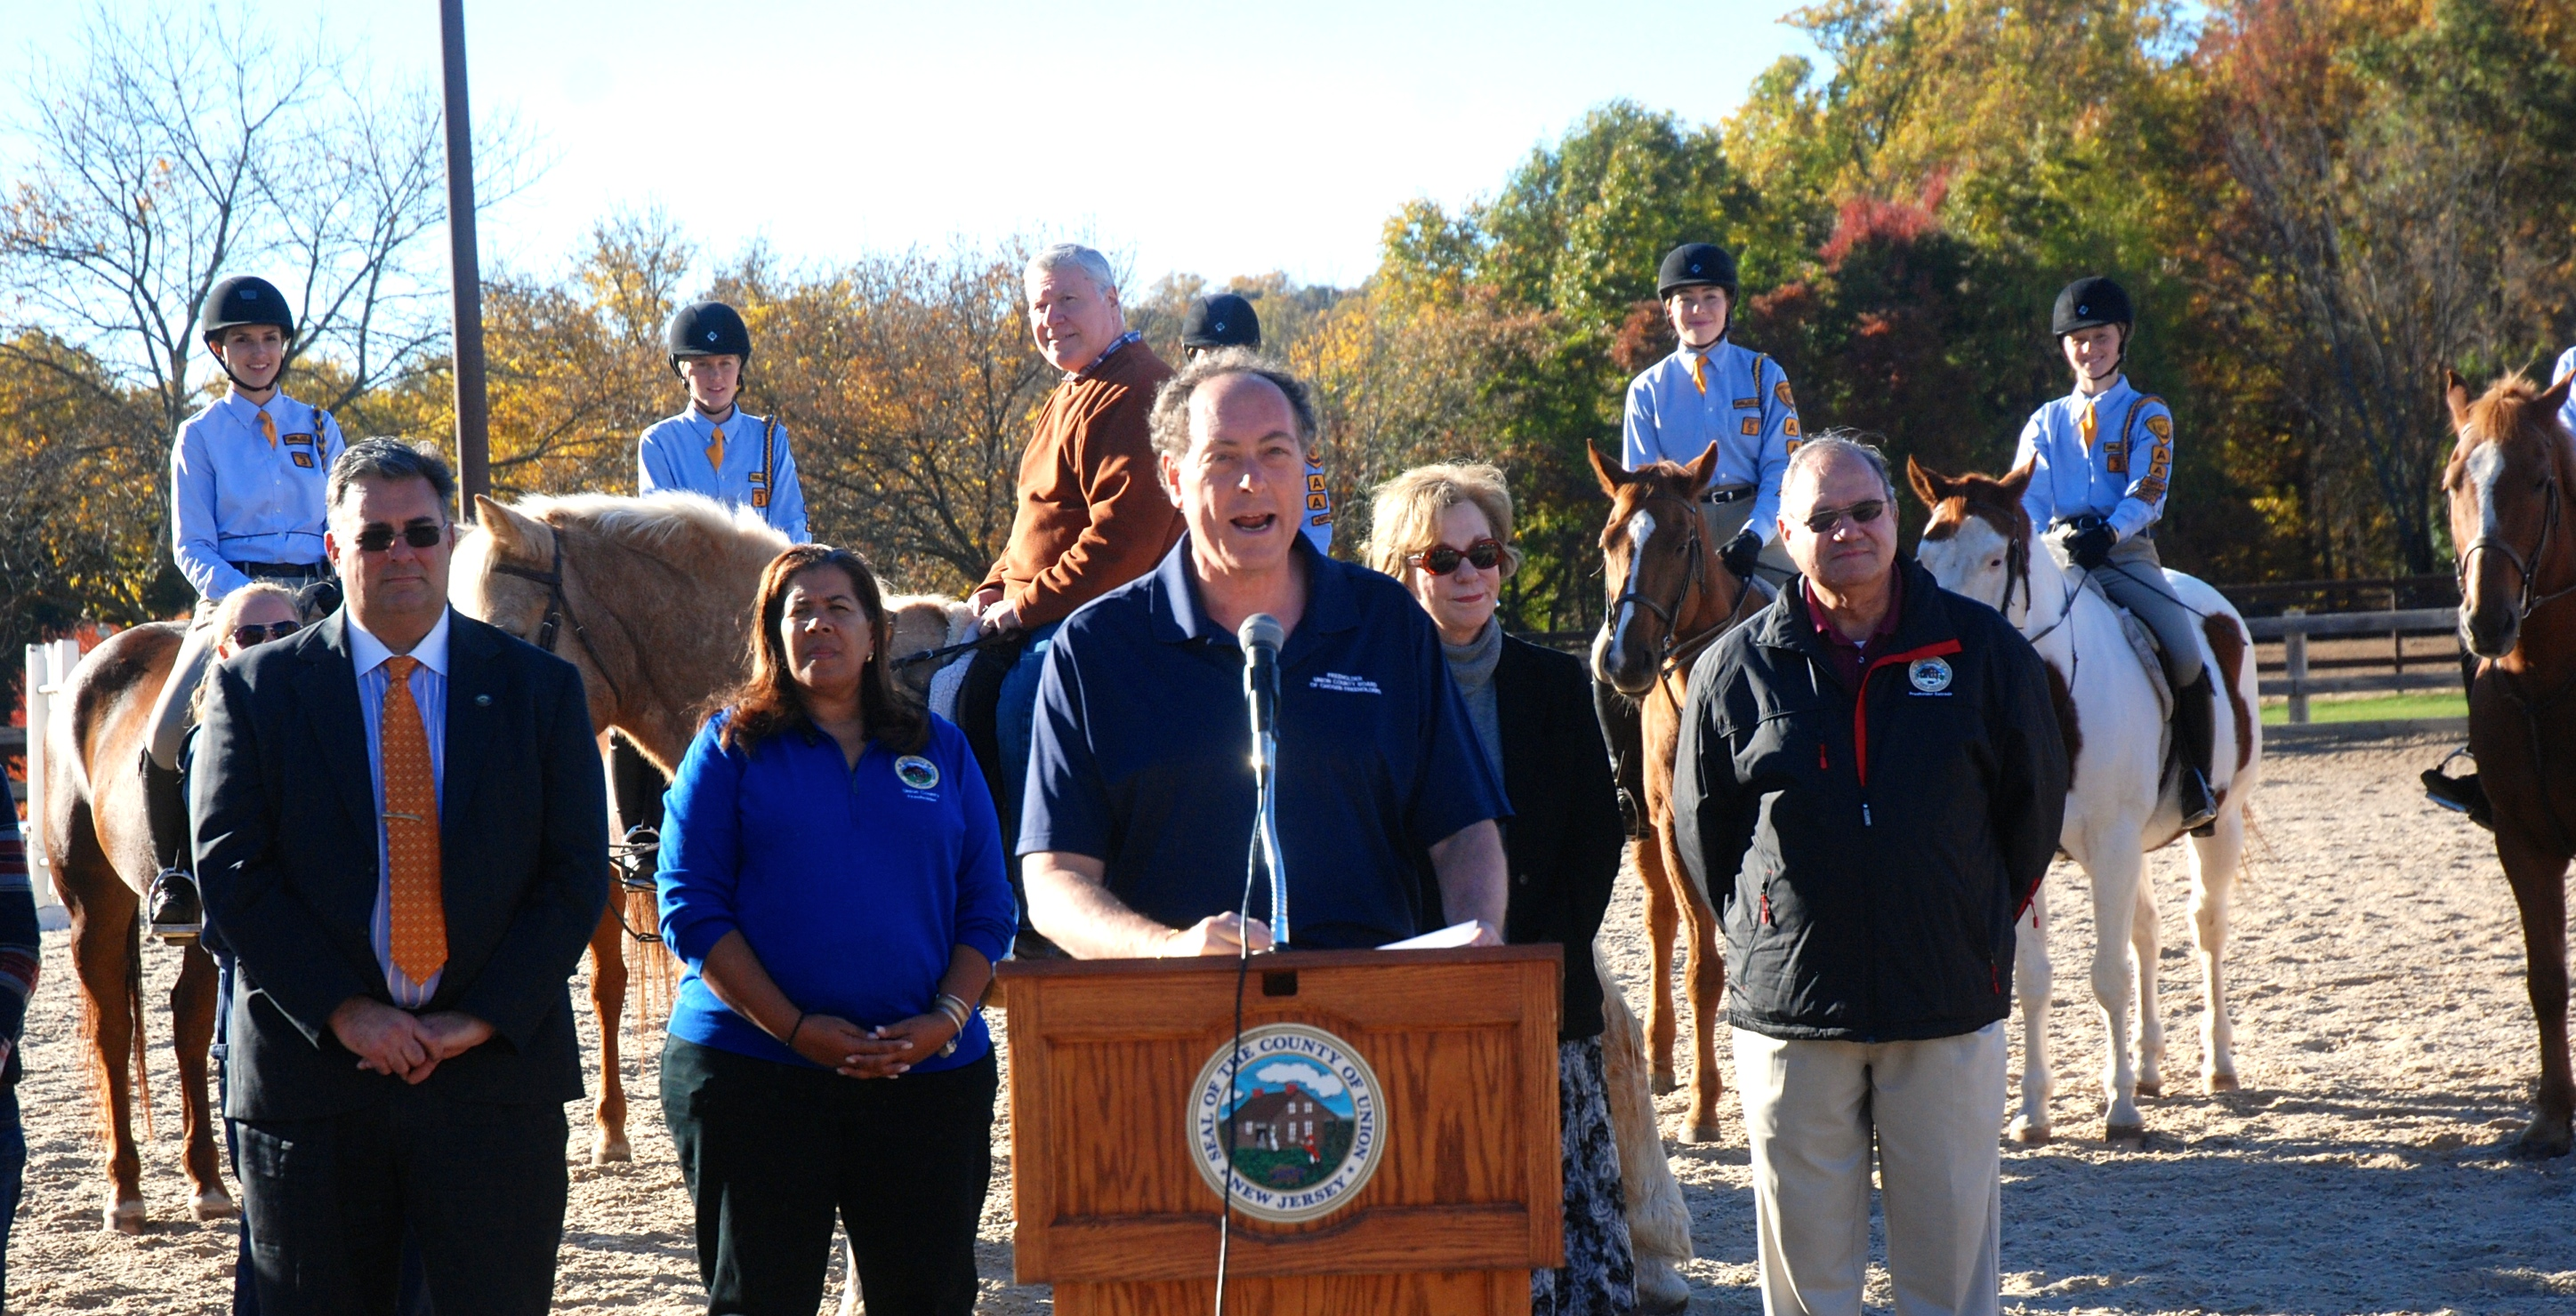 Watchung Stables Expansion Begins County Of Union New